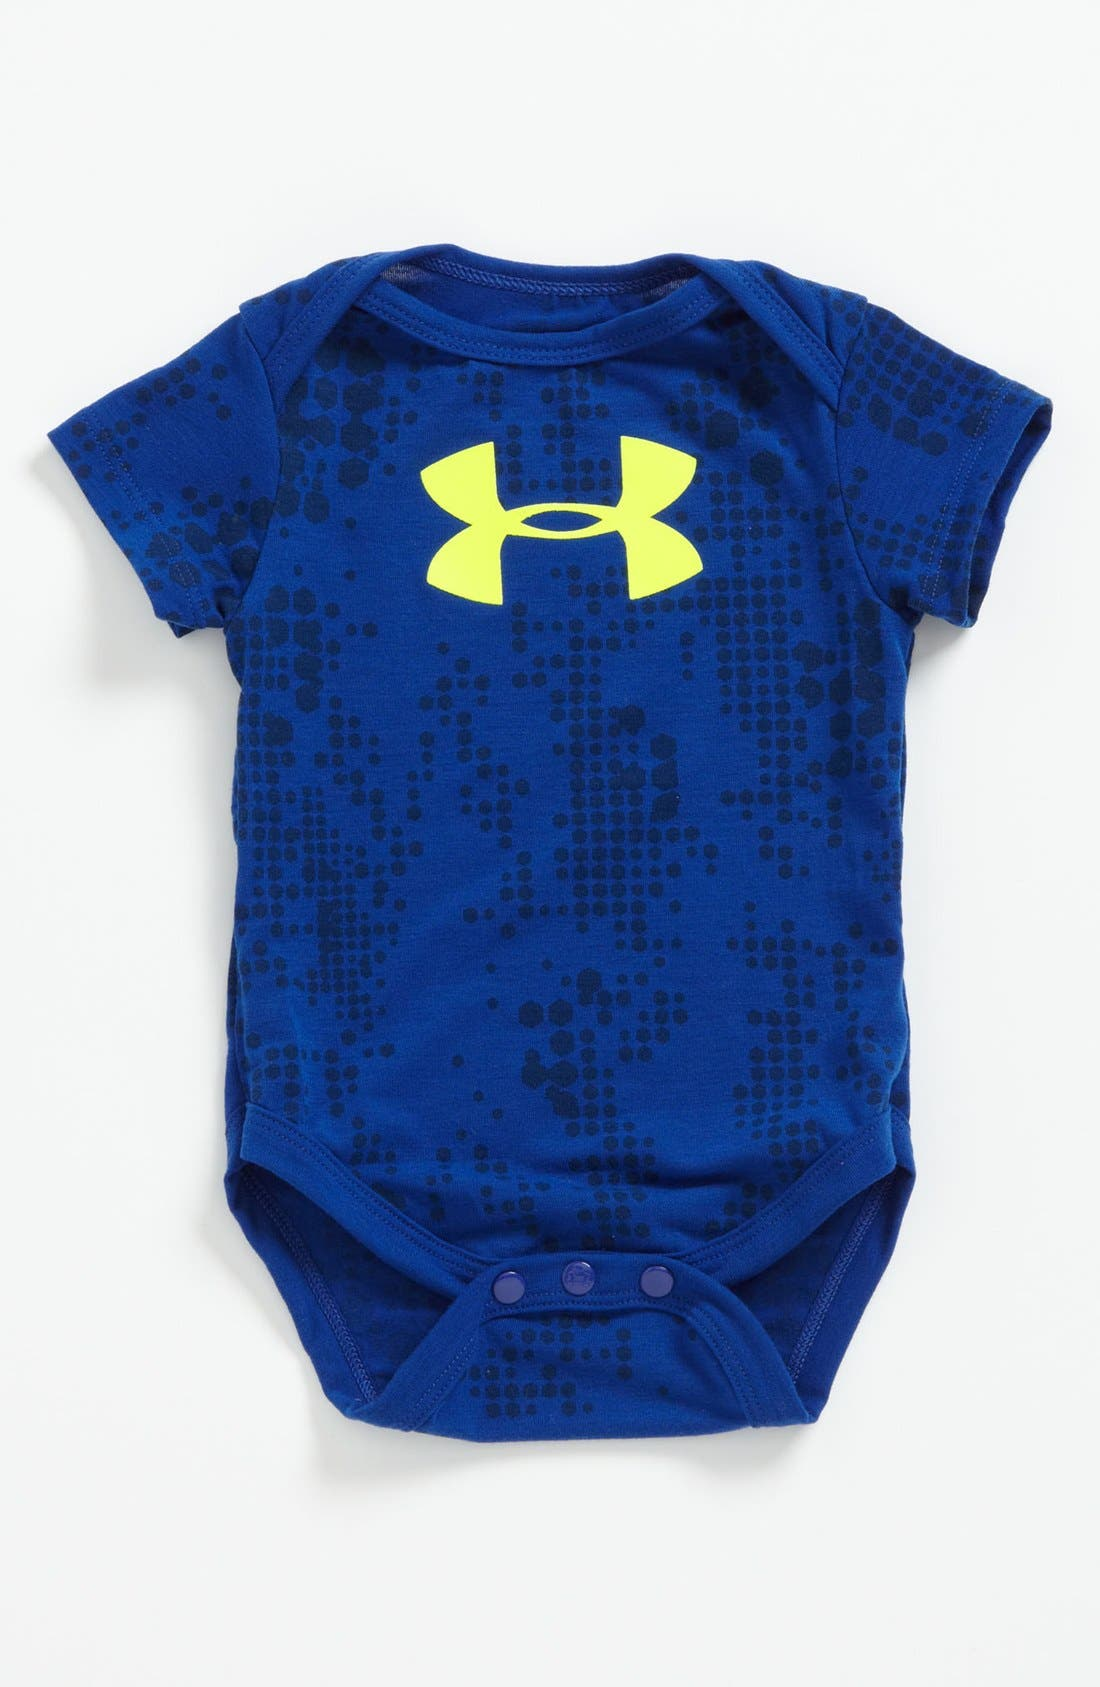 Alternate Image 1 Selected - Under Armour 'Camo Frog' Bodysuit (Baby)